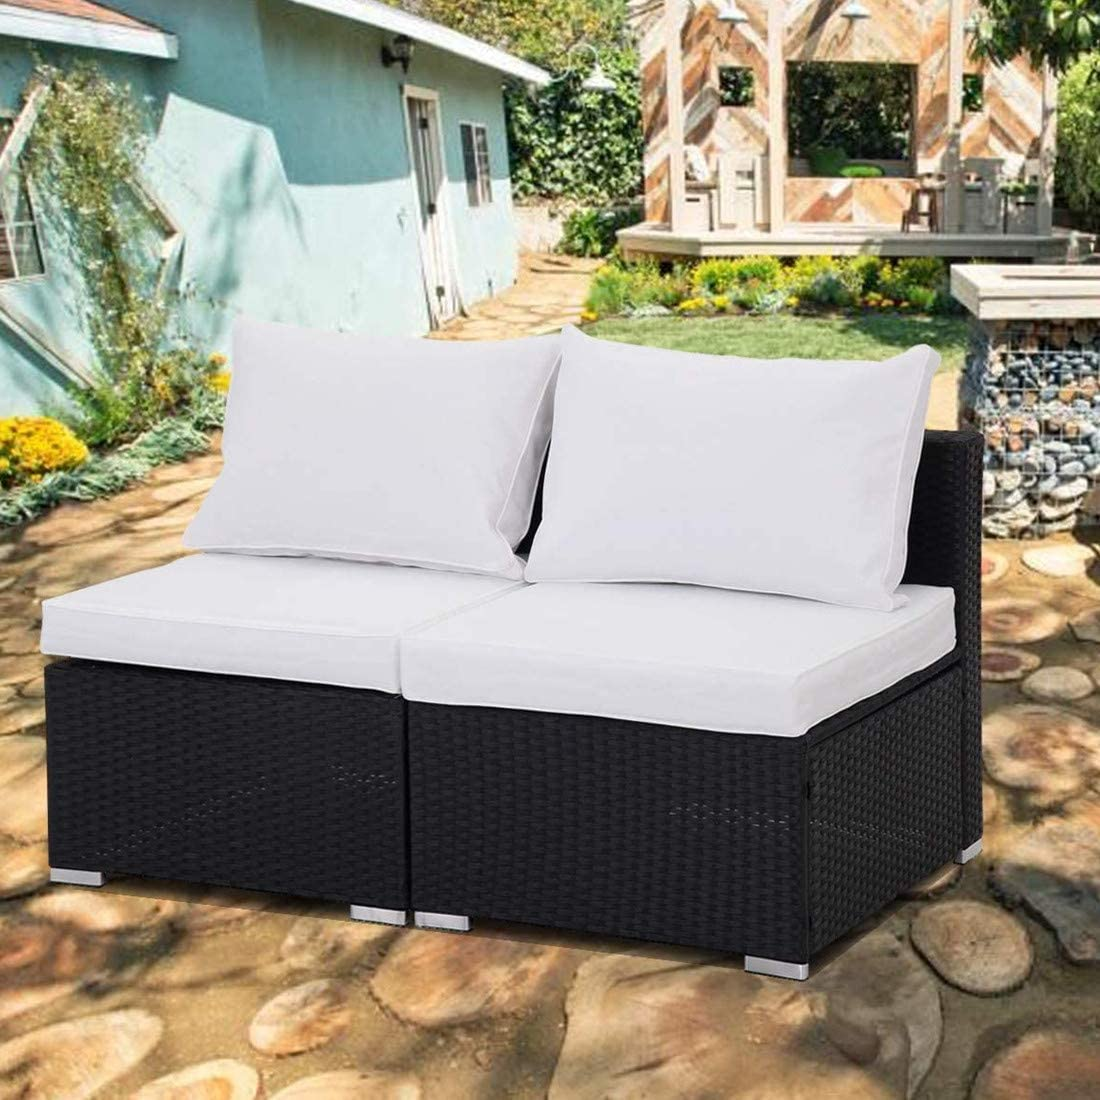 GREARDEN 2PCS PE Rattan Wicker Sofa Sets Patio Furniture Set Outdoor Sectional Coversation Sofa Set